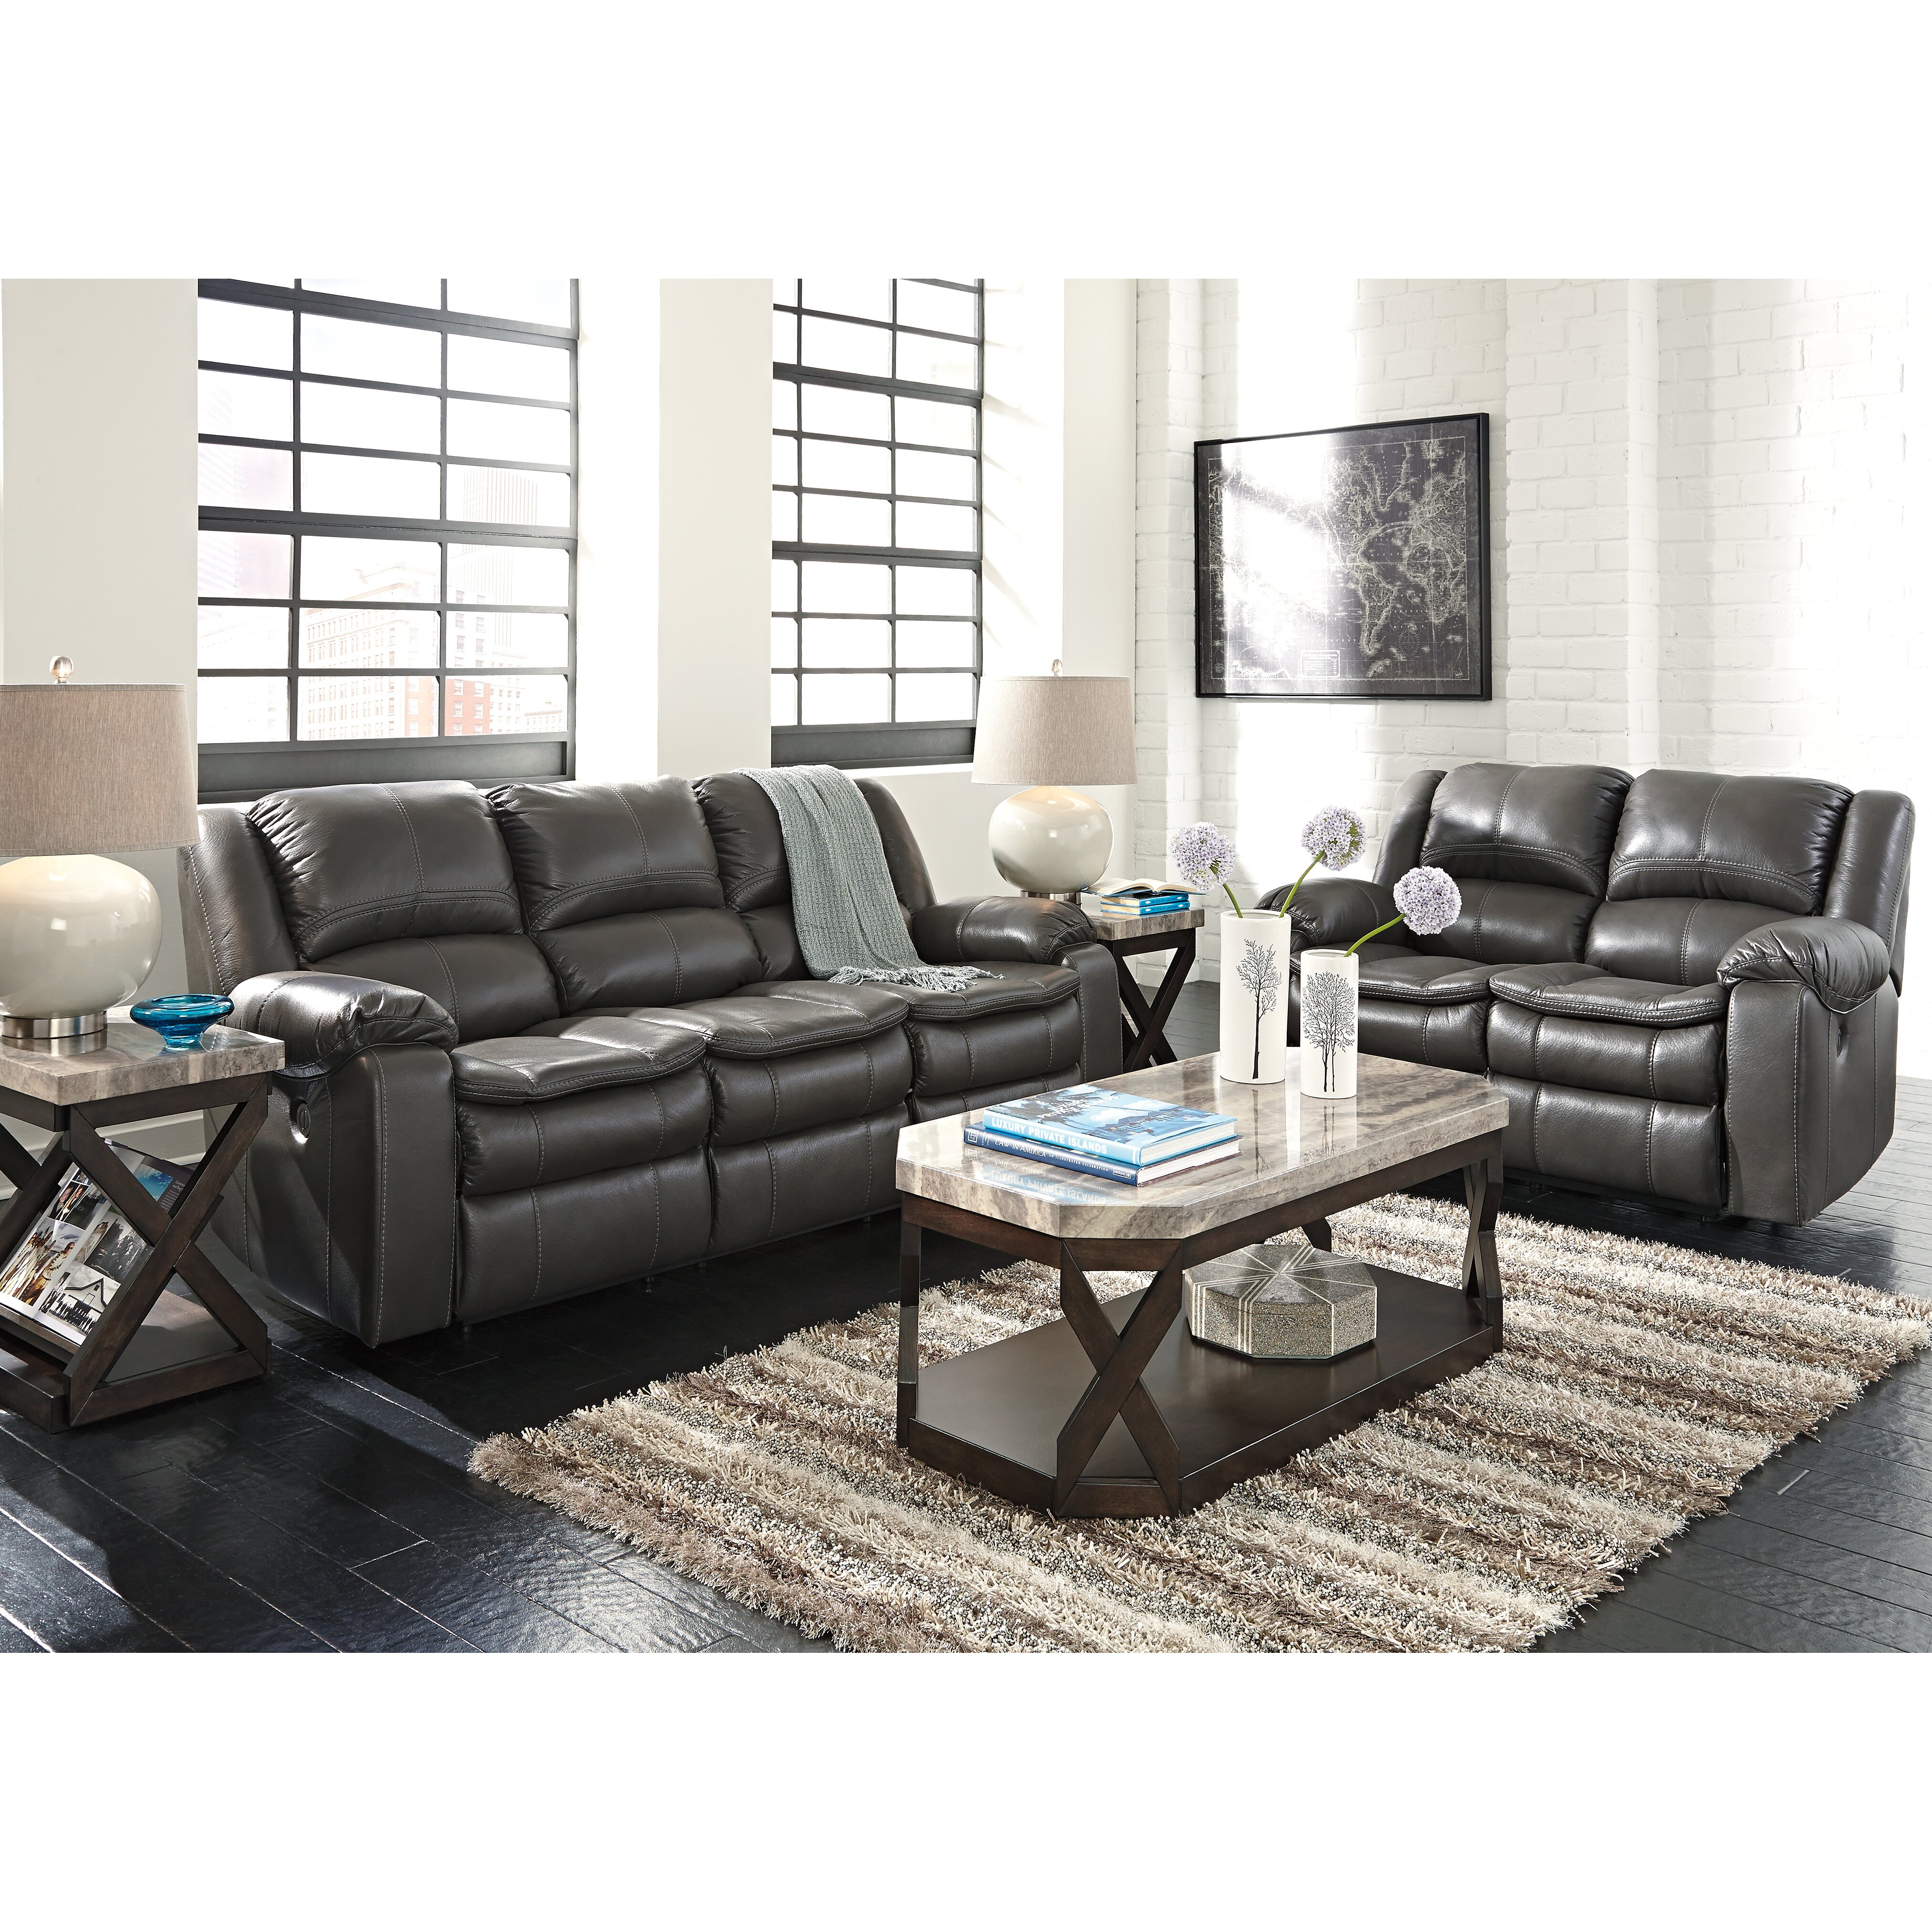 Ashley Furniture Fayetteville: Signature Design By Ashley Long Knight Reclining Sofa